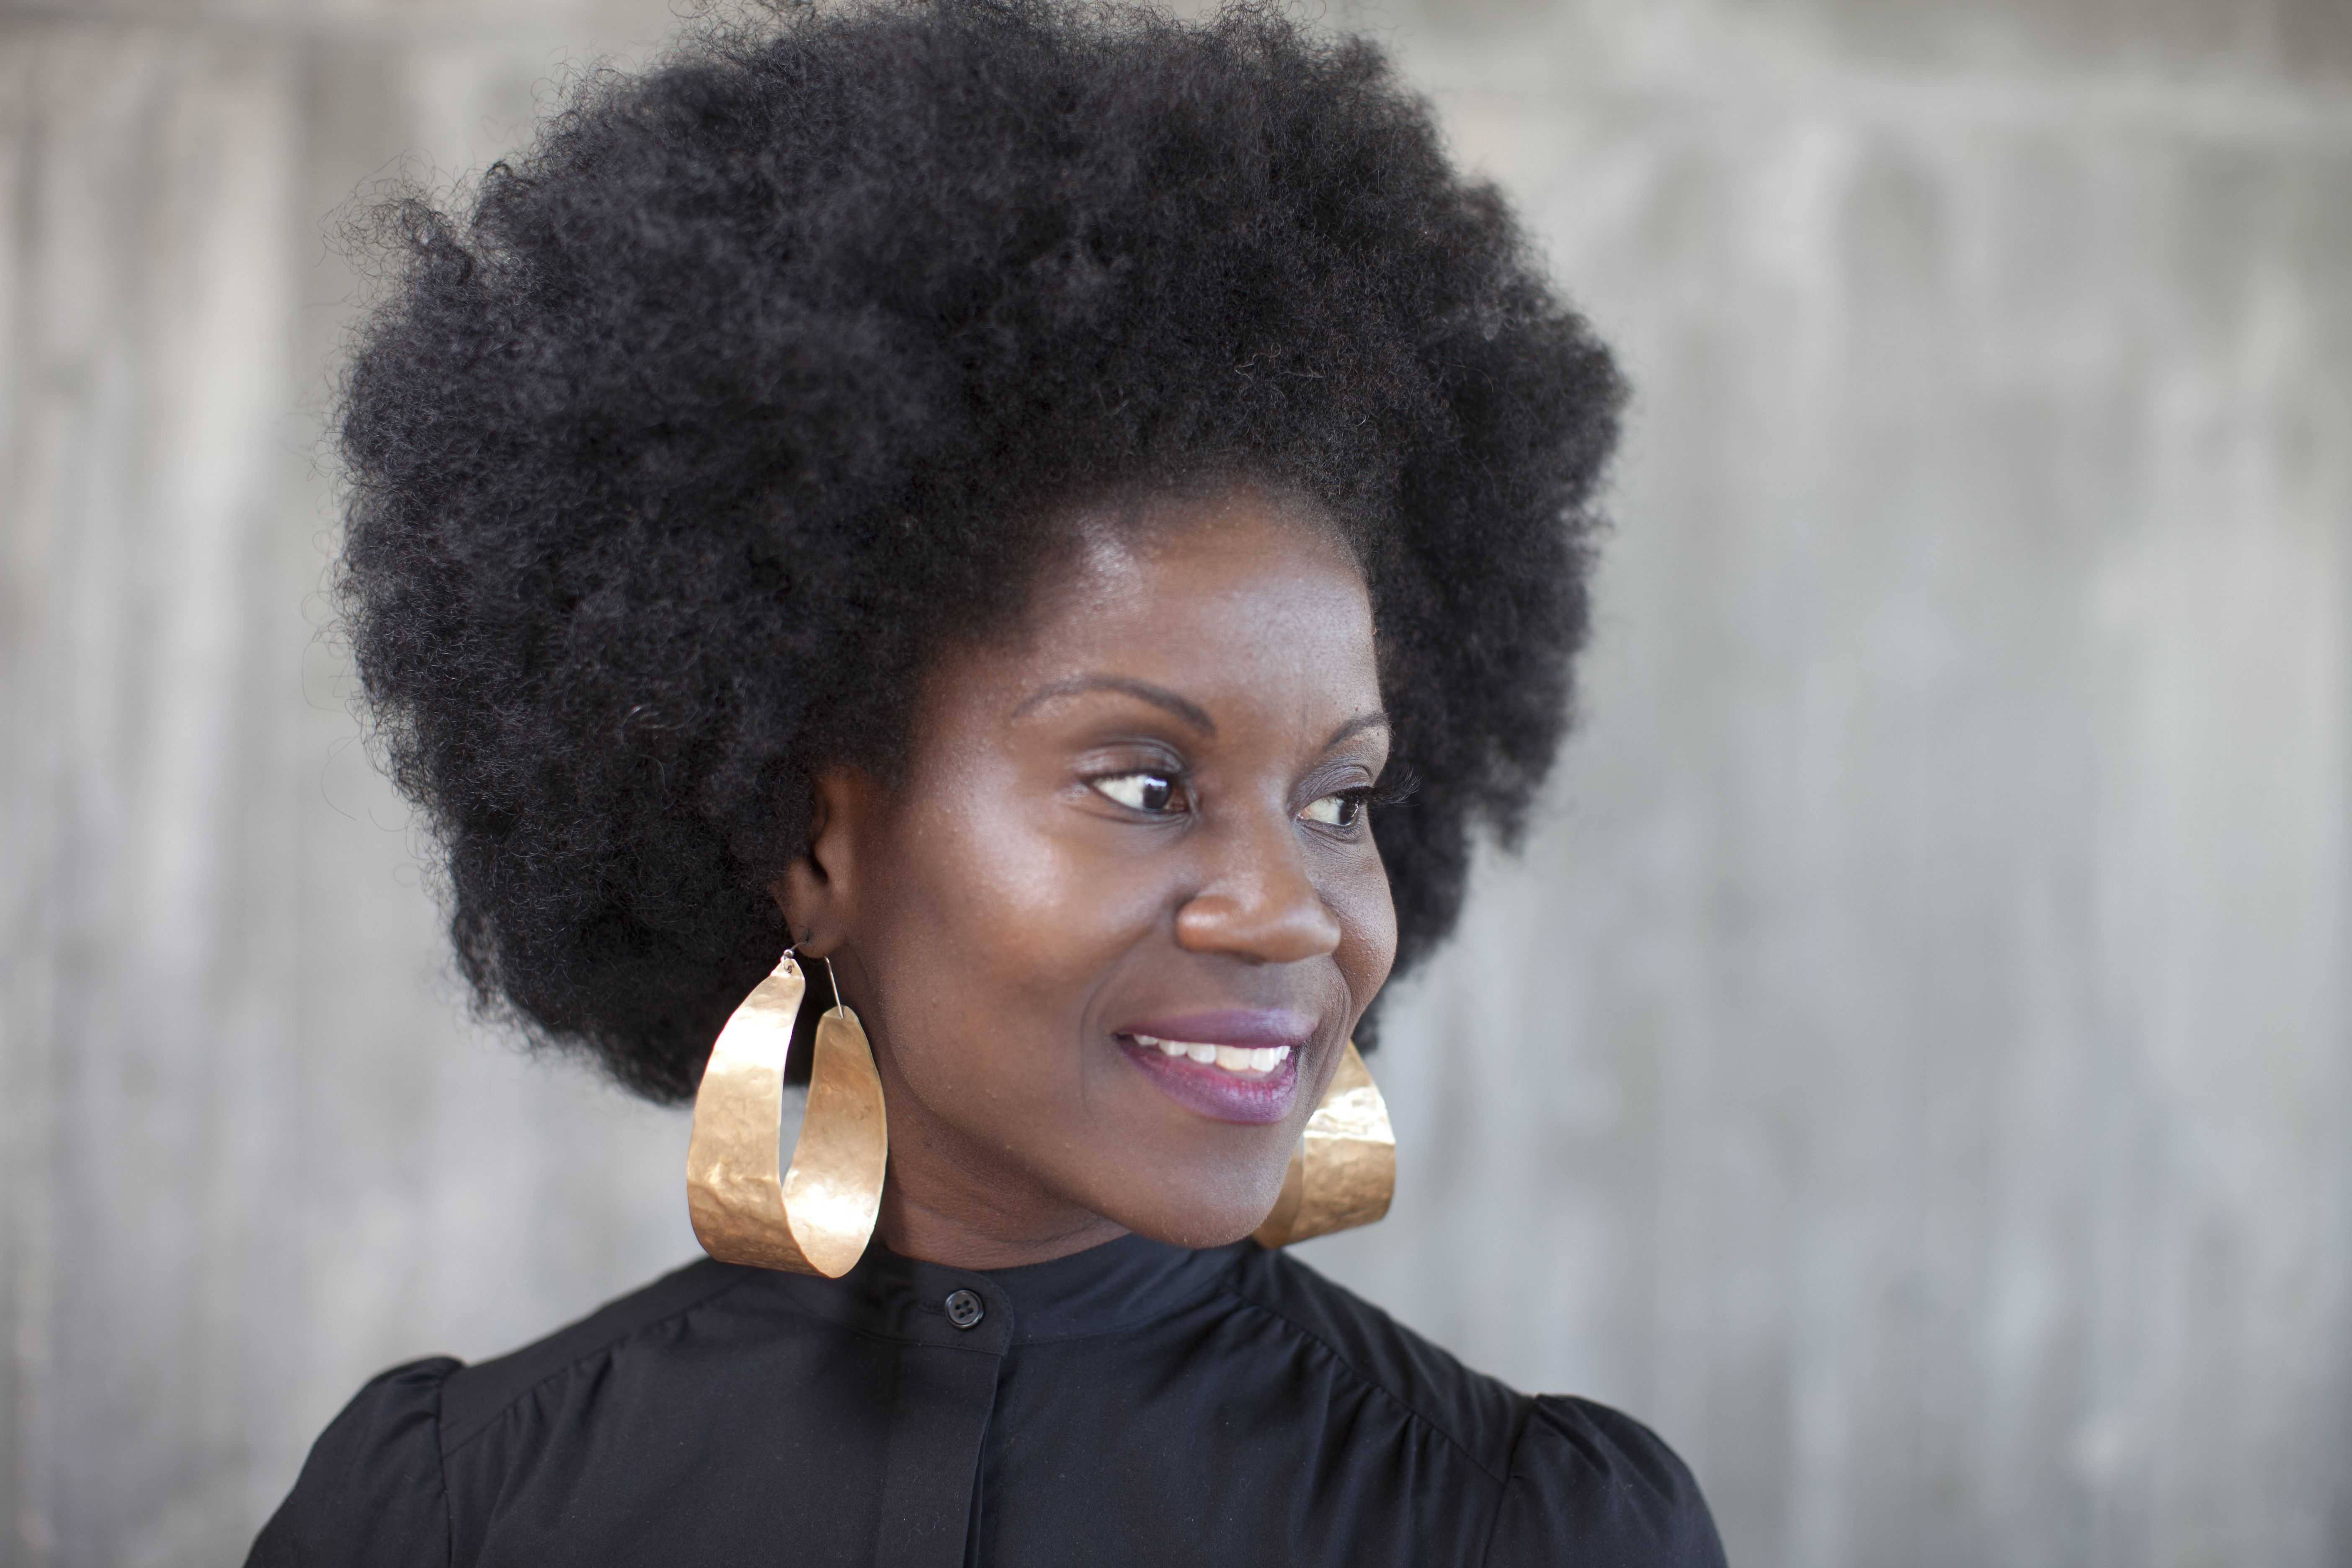 Chemical Free Black Hair Is Not Simply A Trend The Boston Globe